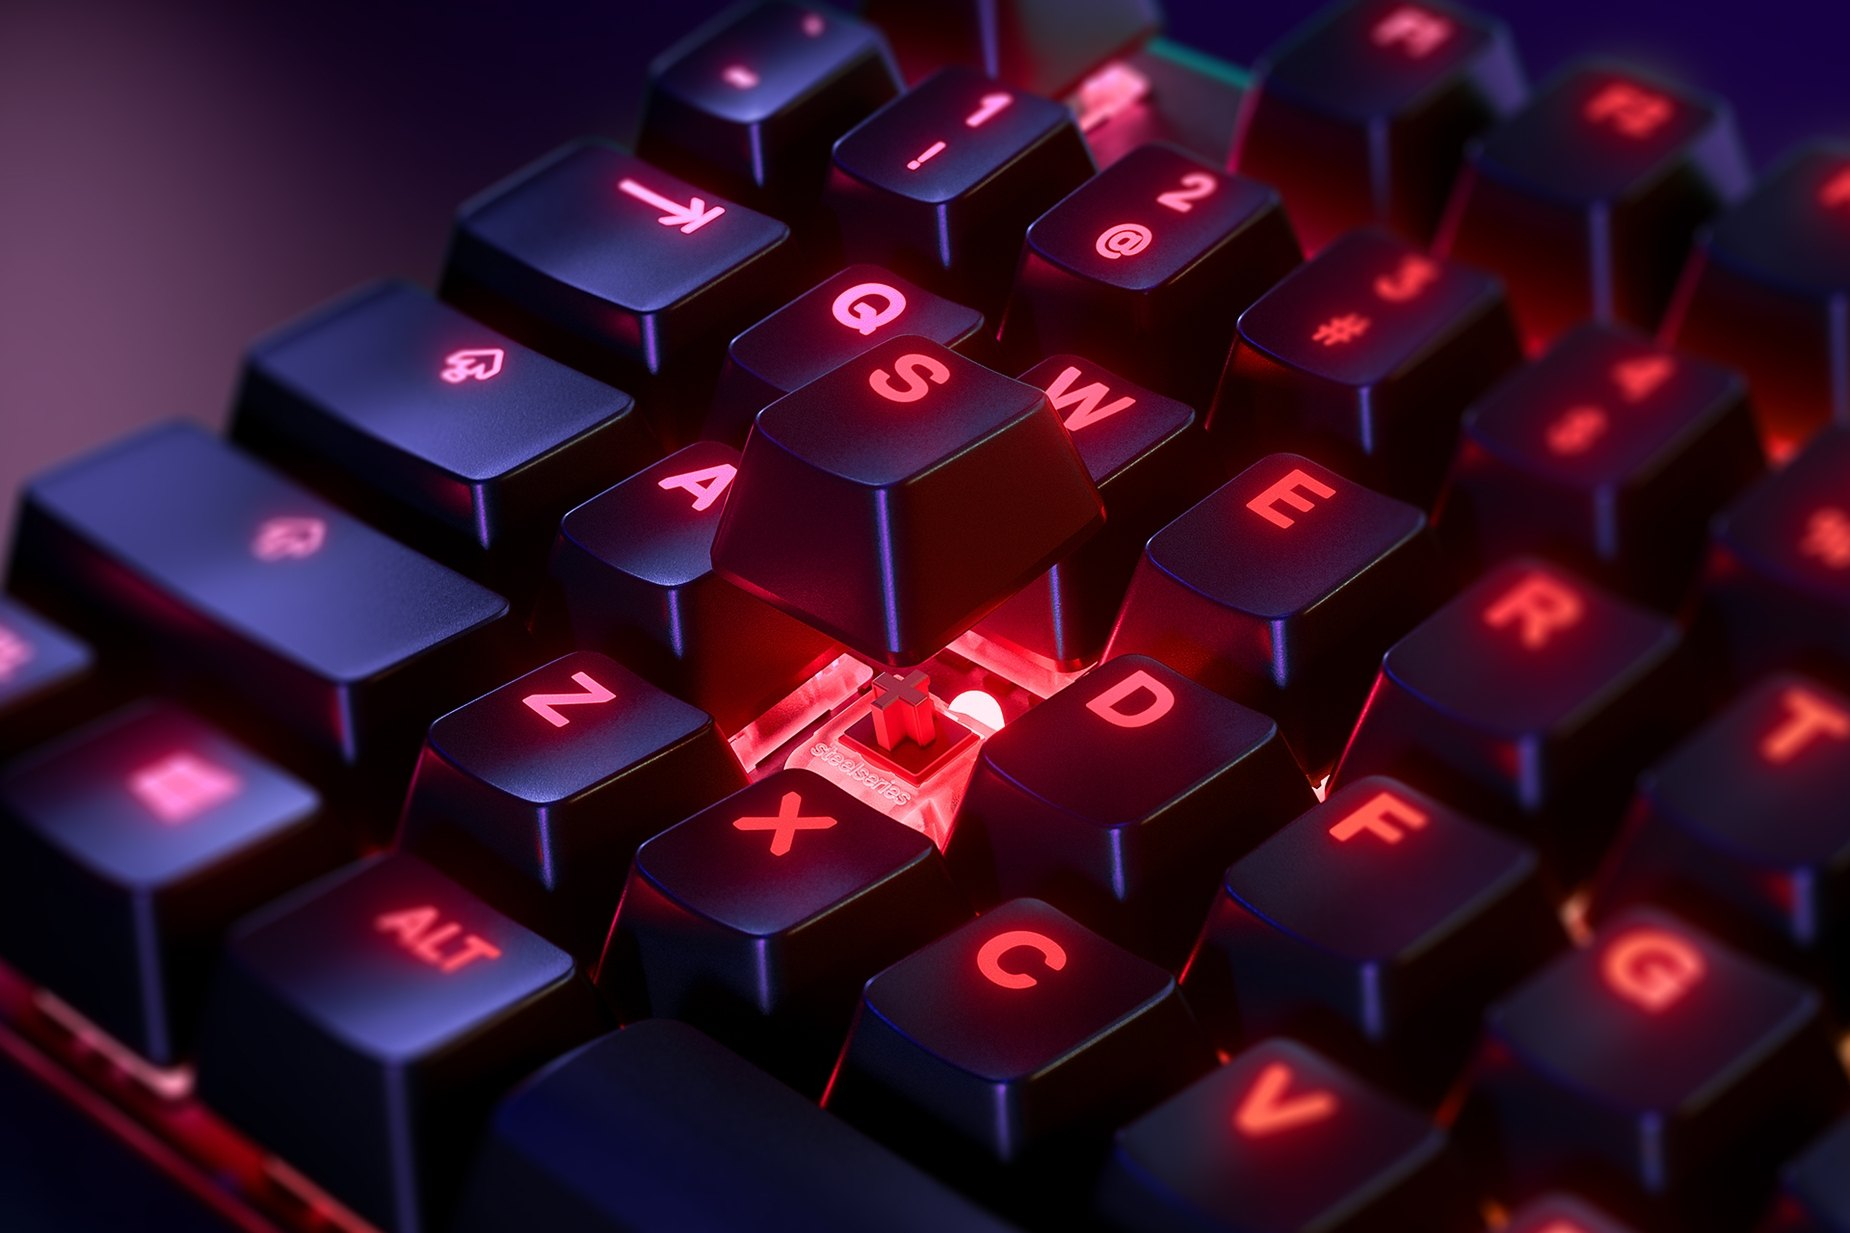 Zoomed in view of a single key on the Turkish-Apex 7 (Red Switch) gaming keyboard, the key is raised up to show the SteelSeries QX2 Mechanical RGB Switch underneath